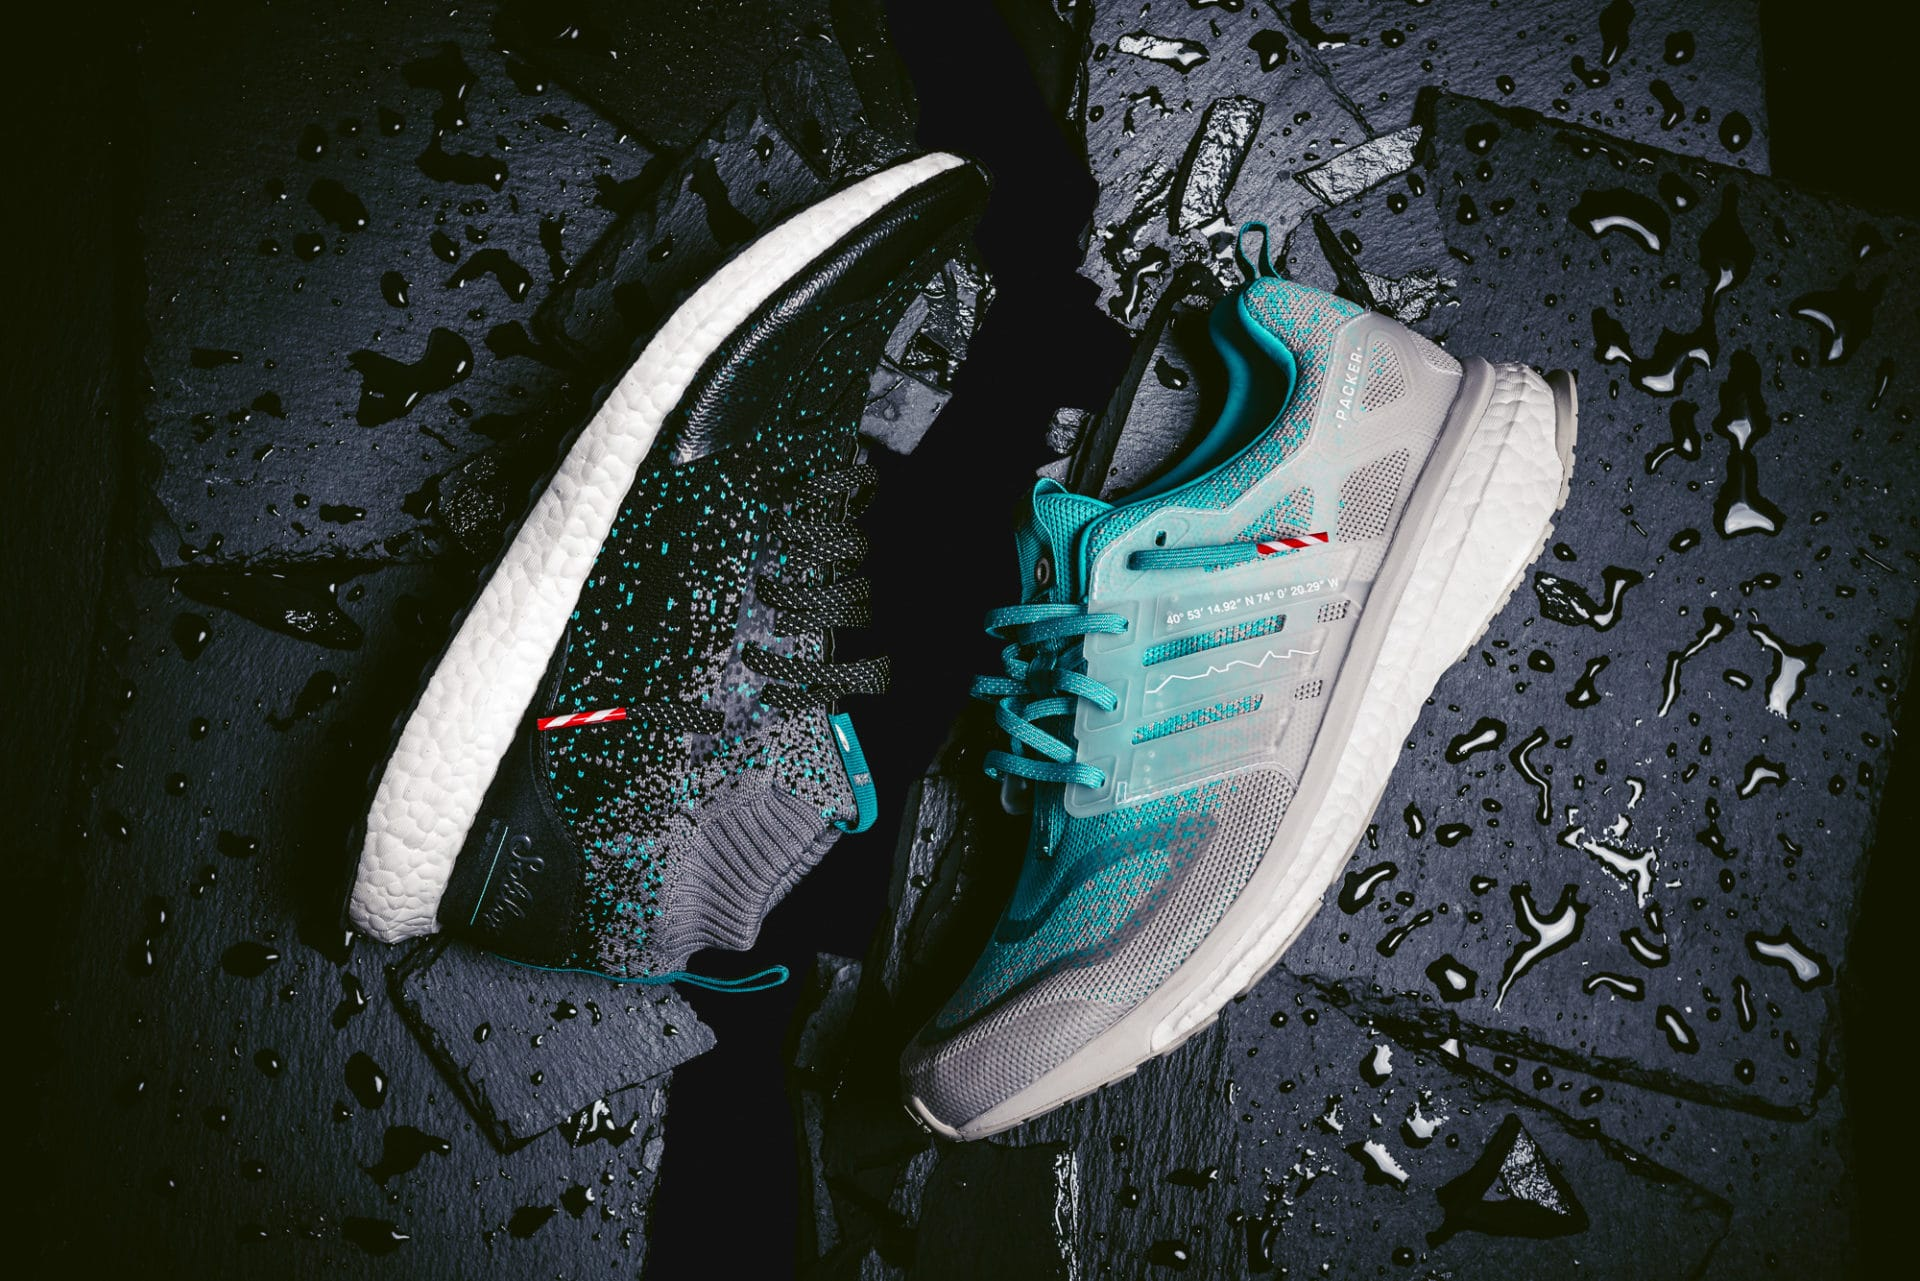 solebox x Packer Shoes »Silfra Rift« for adidas Consortium